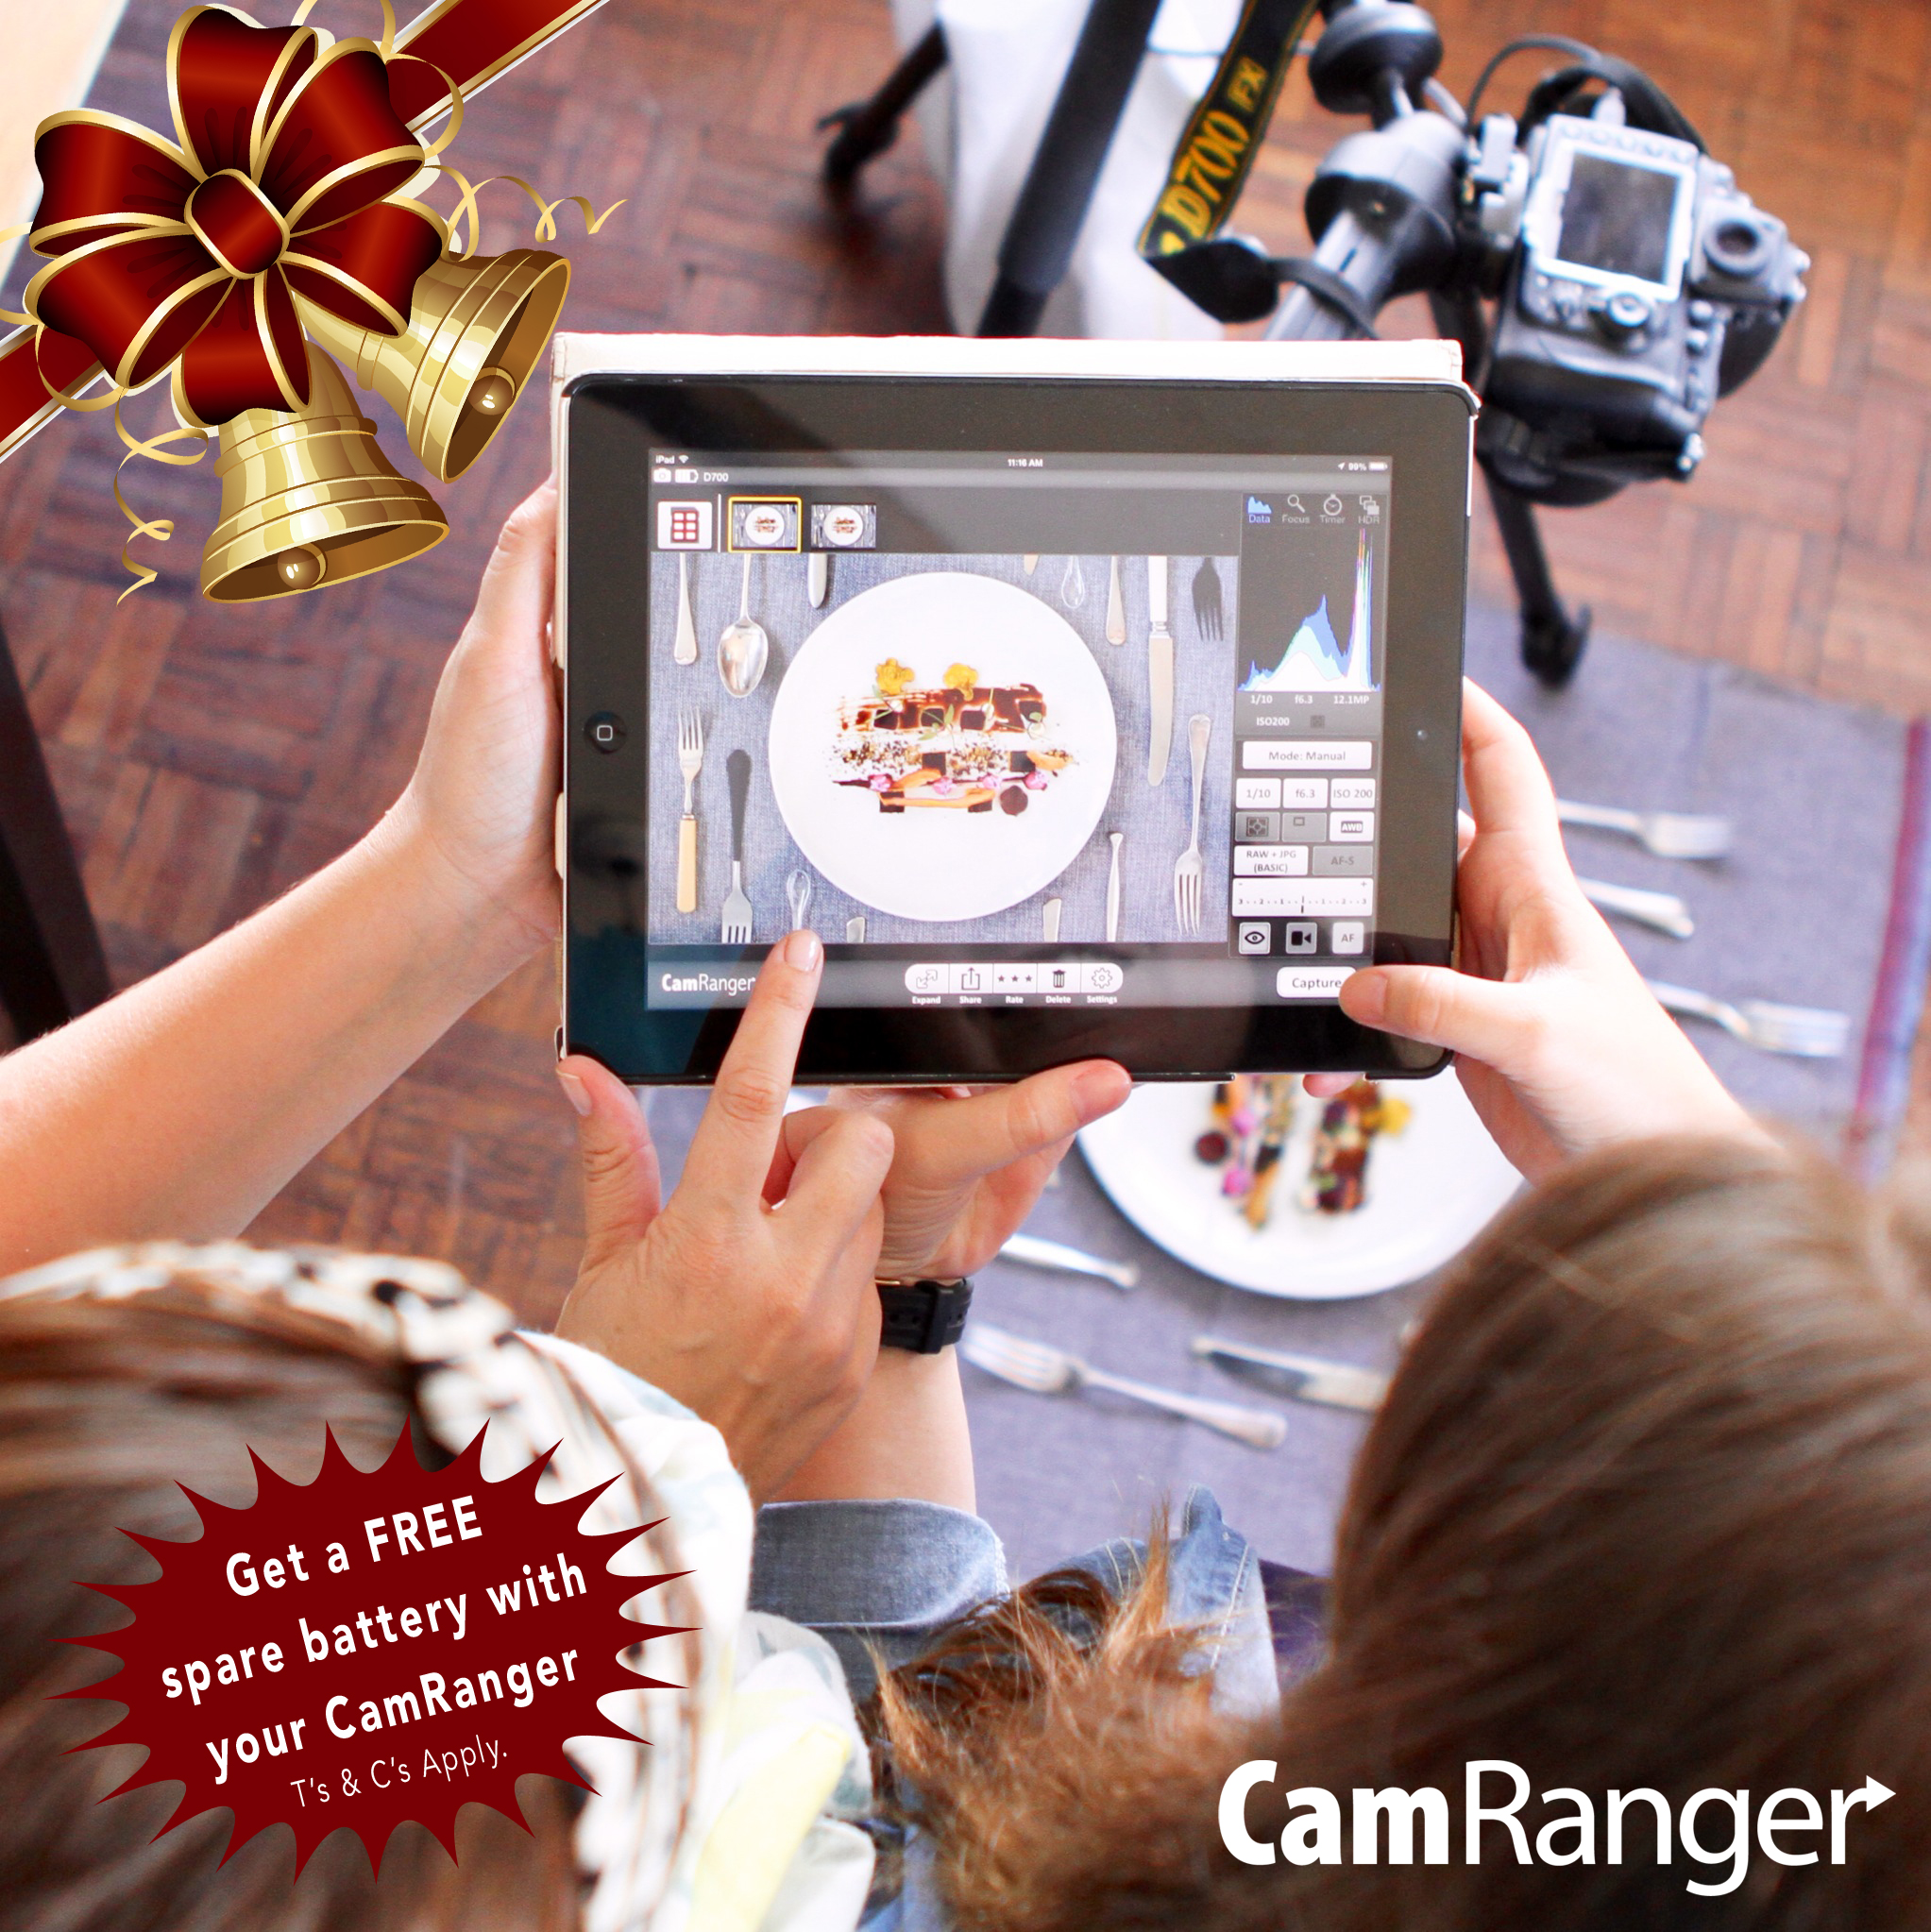 CamRanger December Promotion Details.